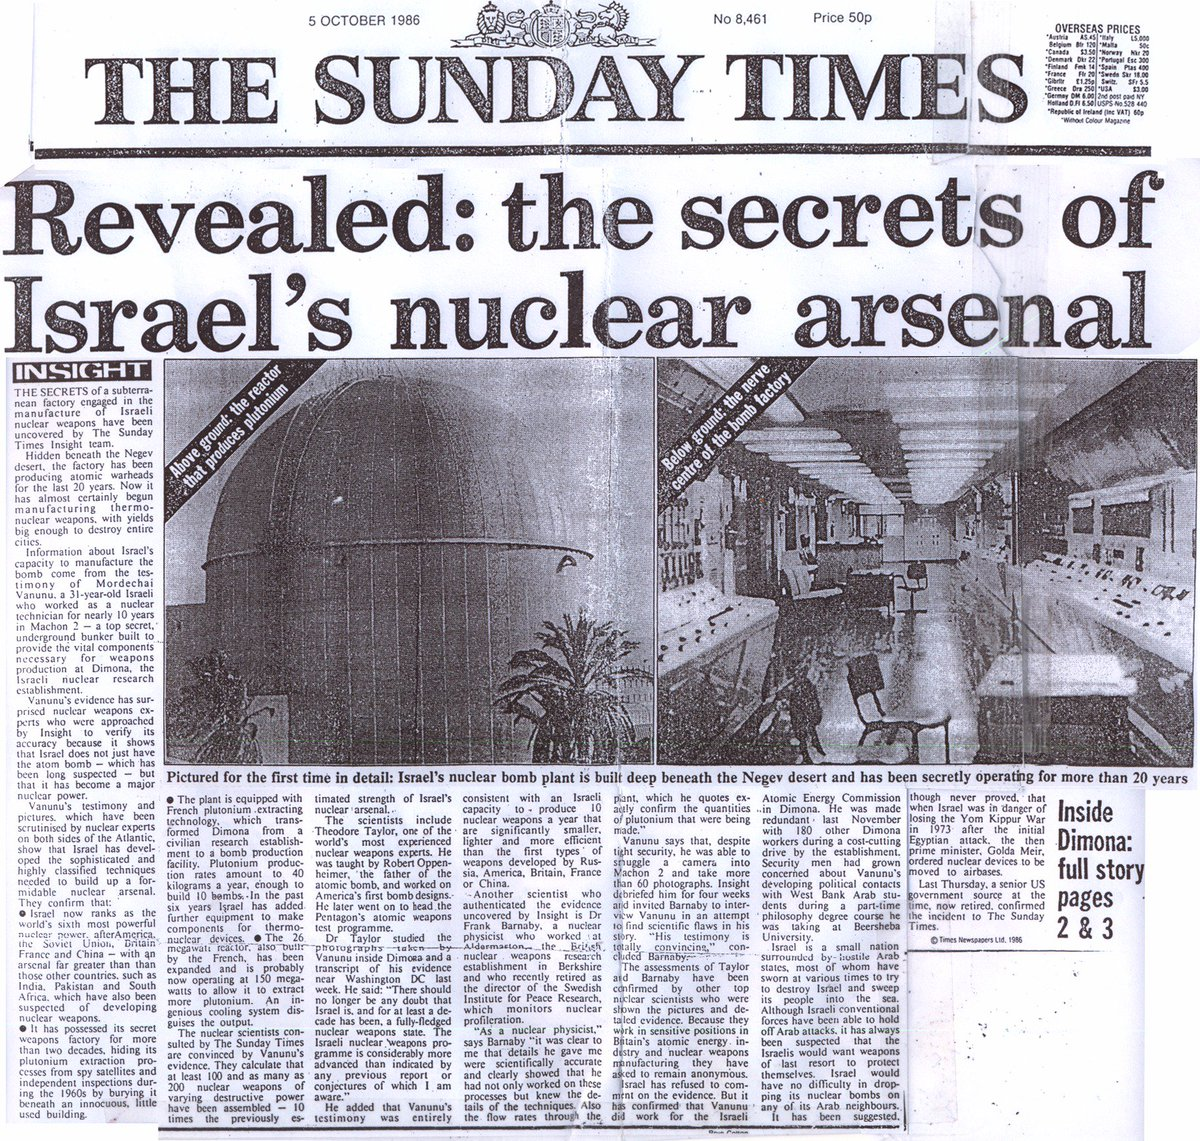 Israel's nuclear weapons